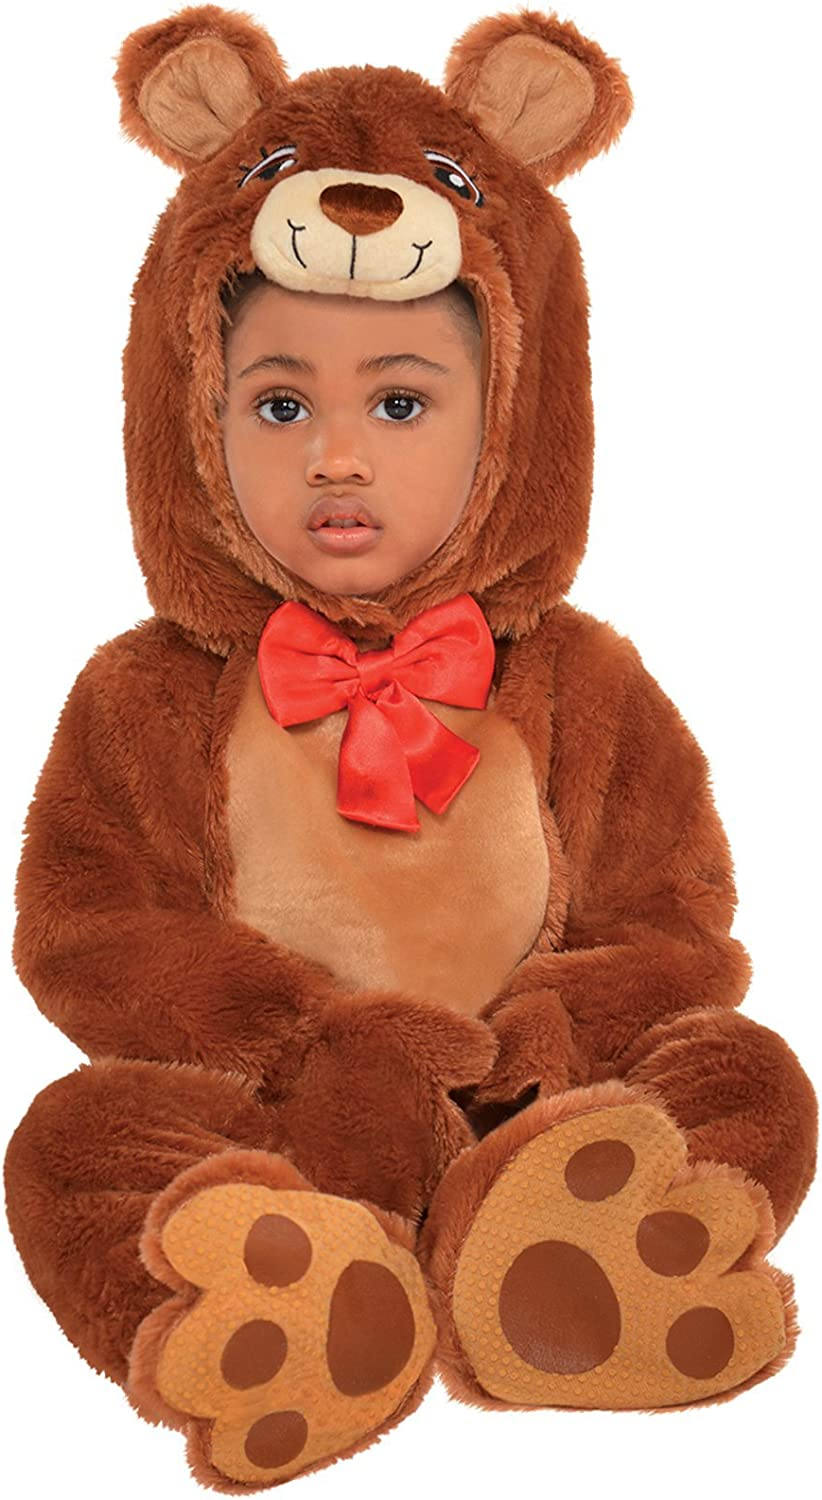 Disfraz de Animal bebé Unisex Oso Teddy Teddy Brown Carnaval ...